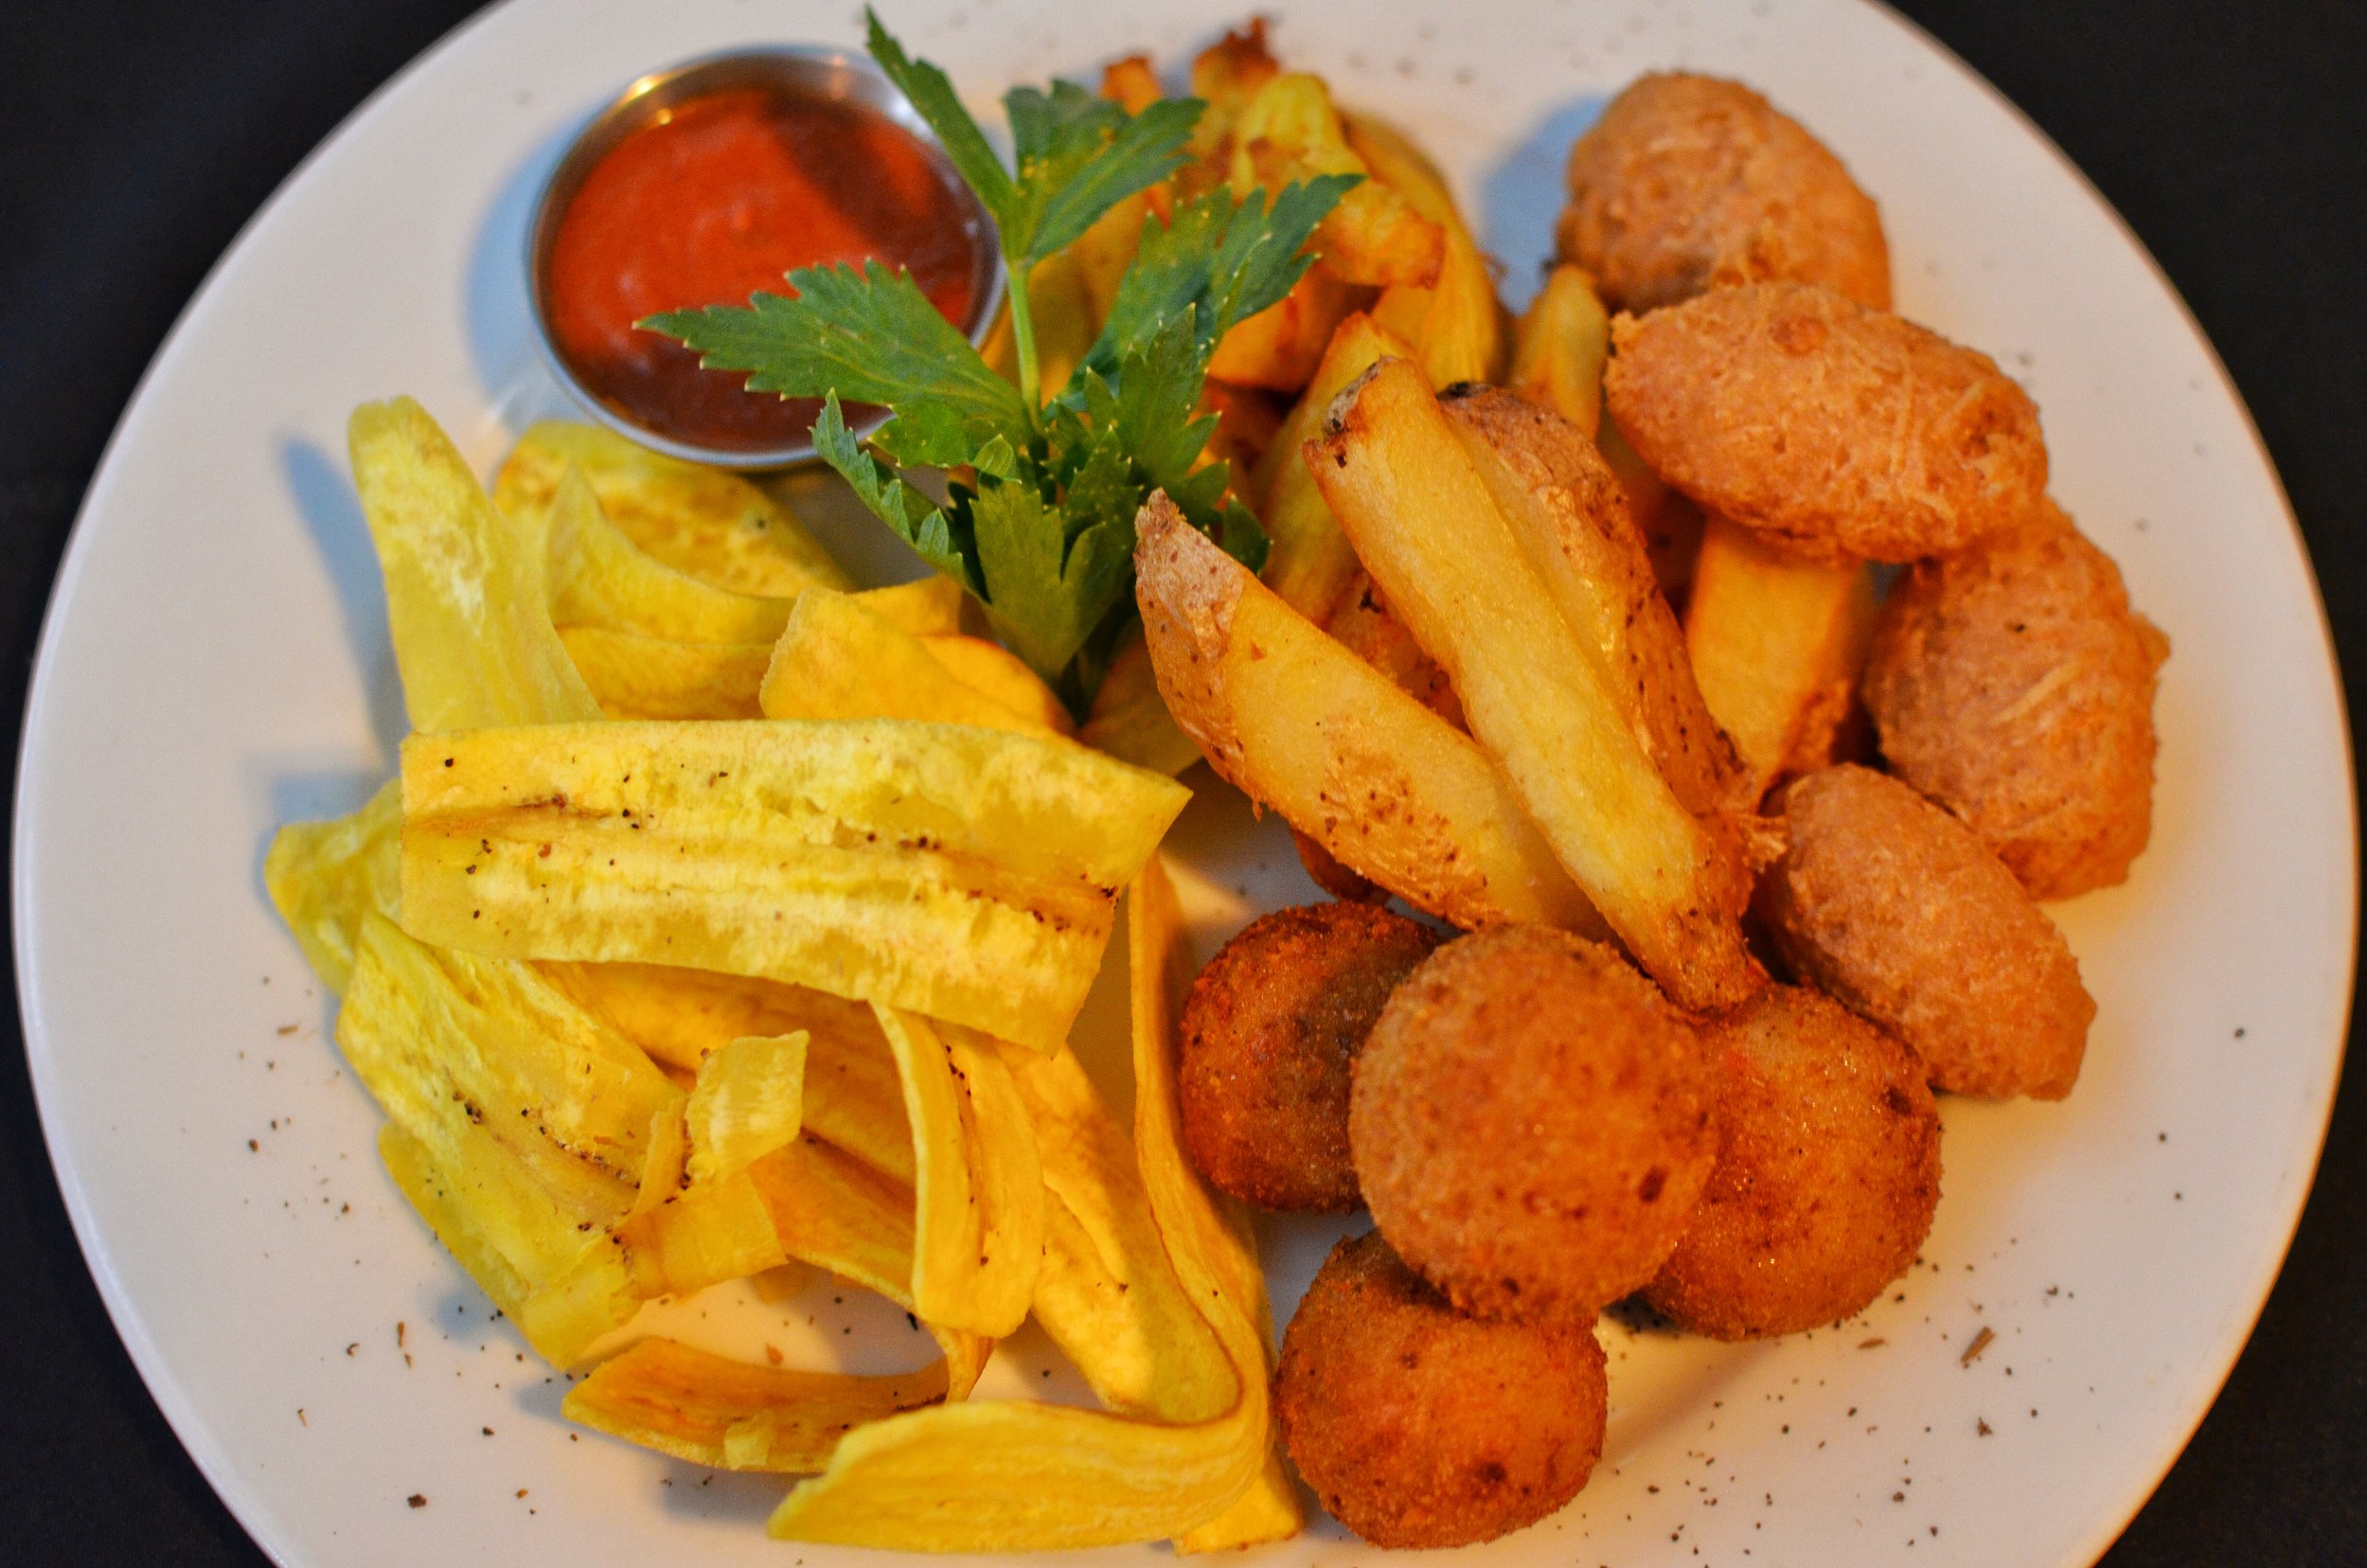 Appetizers included fried balls with taro, yuca fries, plantain chips